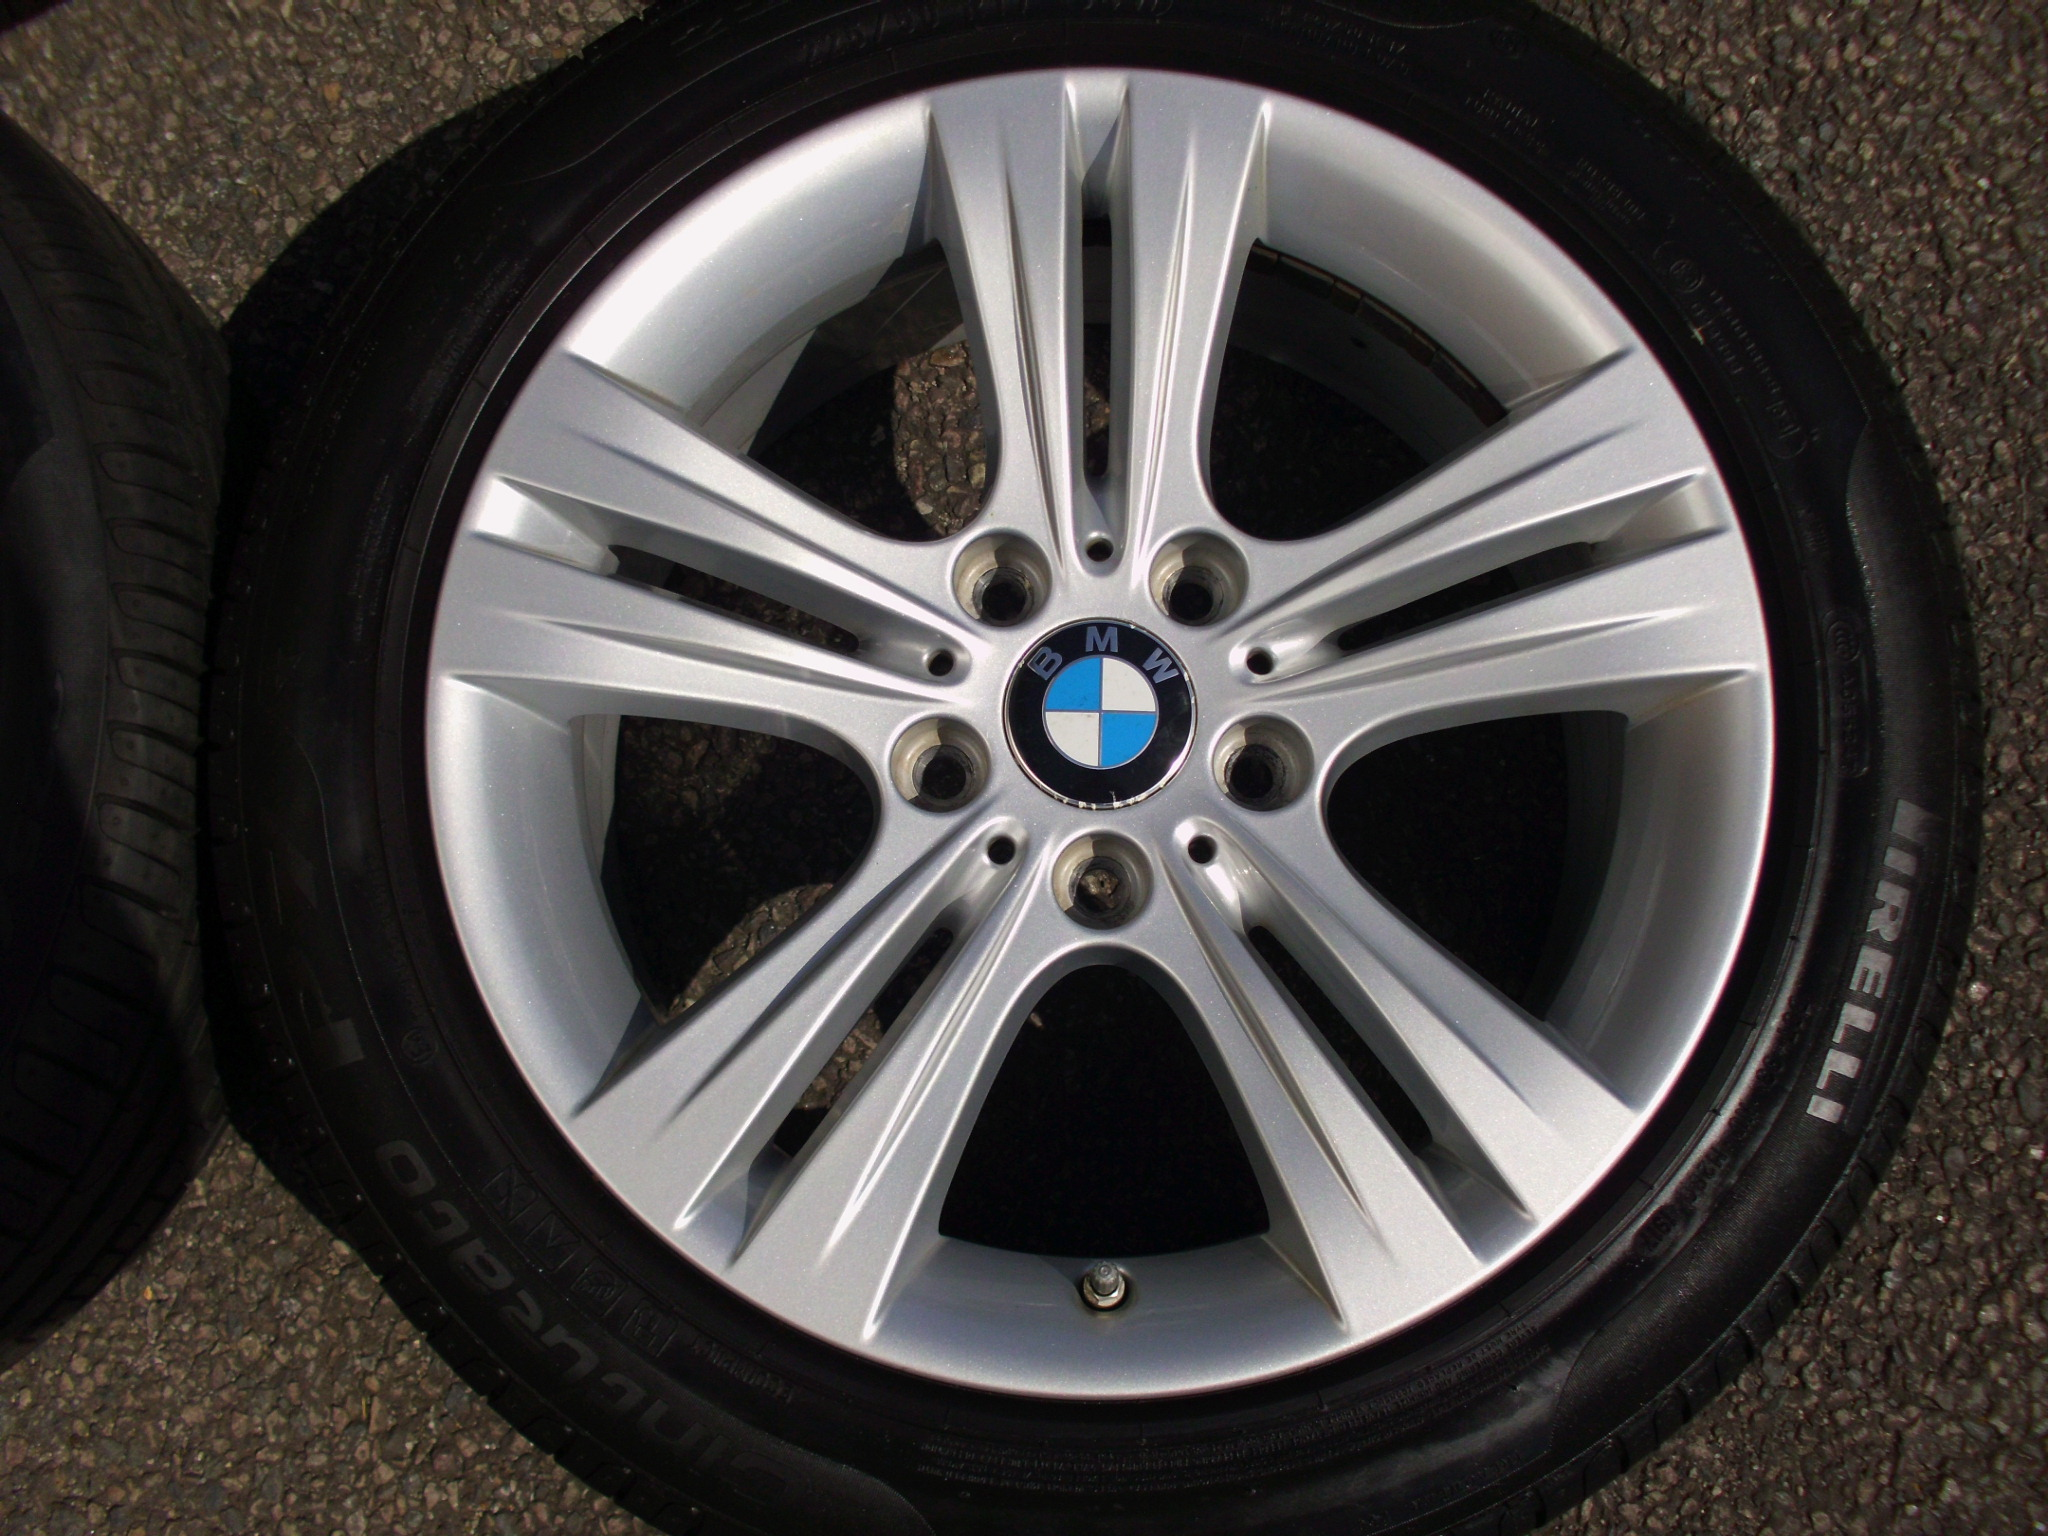 "USED 17"" GENUINE BMW STYLE 392 F30 5 SPOKE ALLOY WHEELS, VGC INC PIRELLI RUNFLATS AND TPMS"